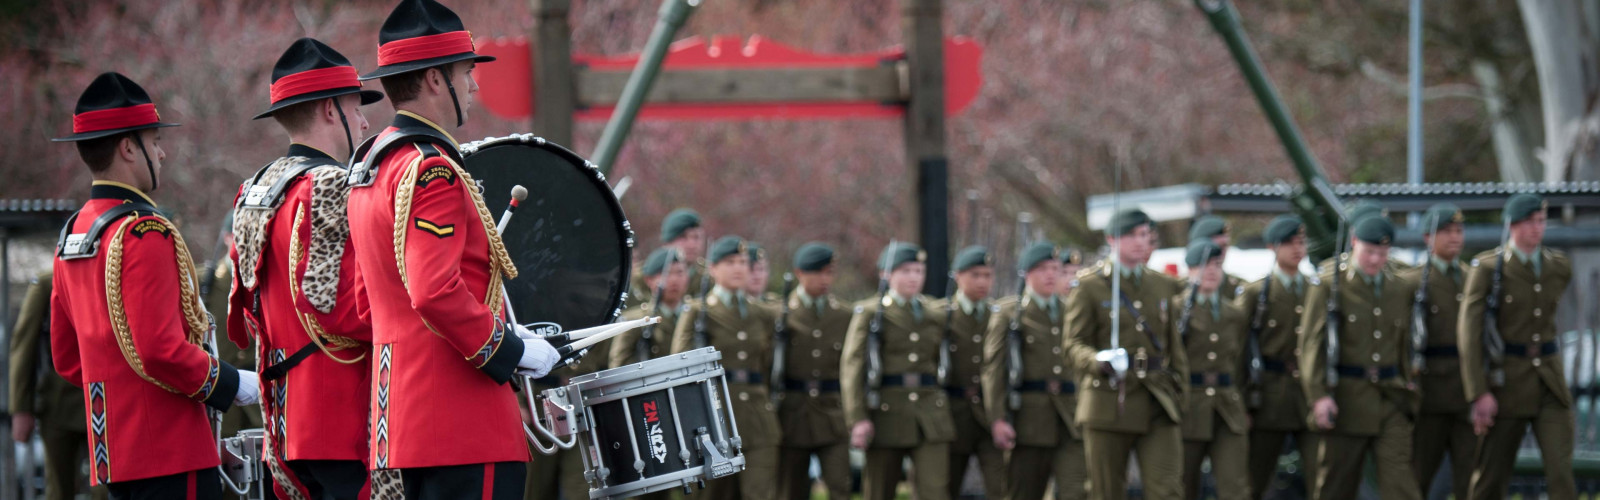 Army Musician full width 02